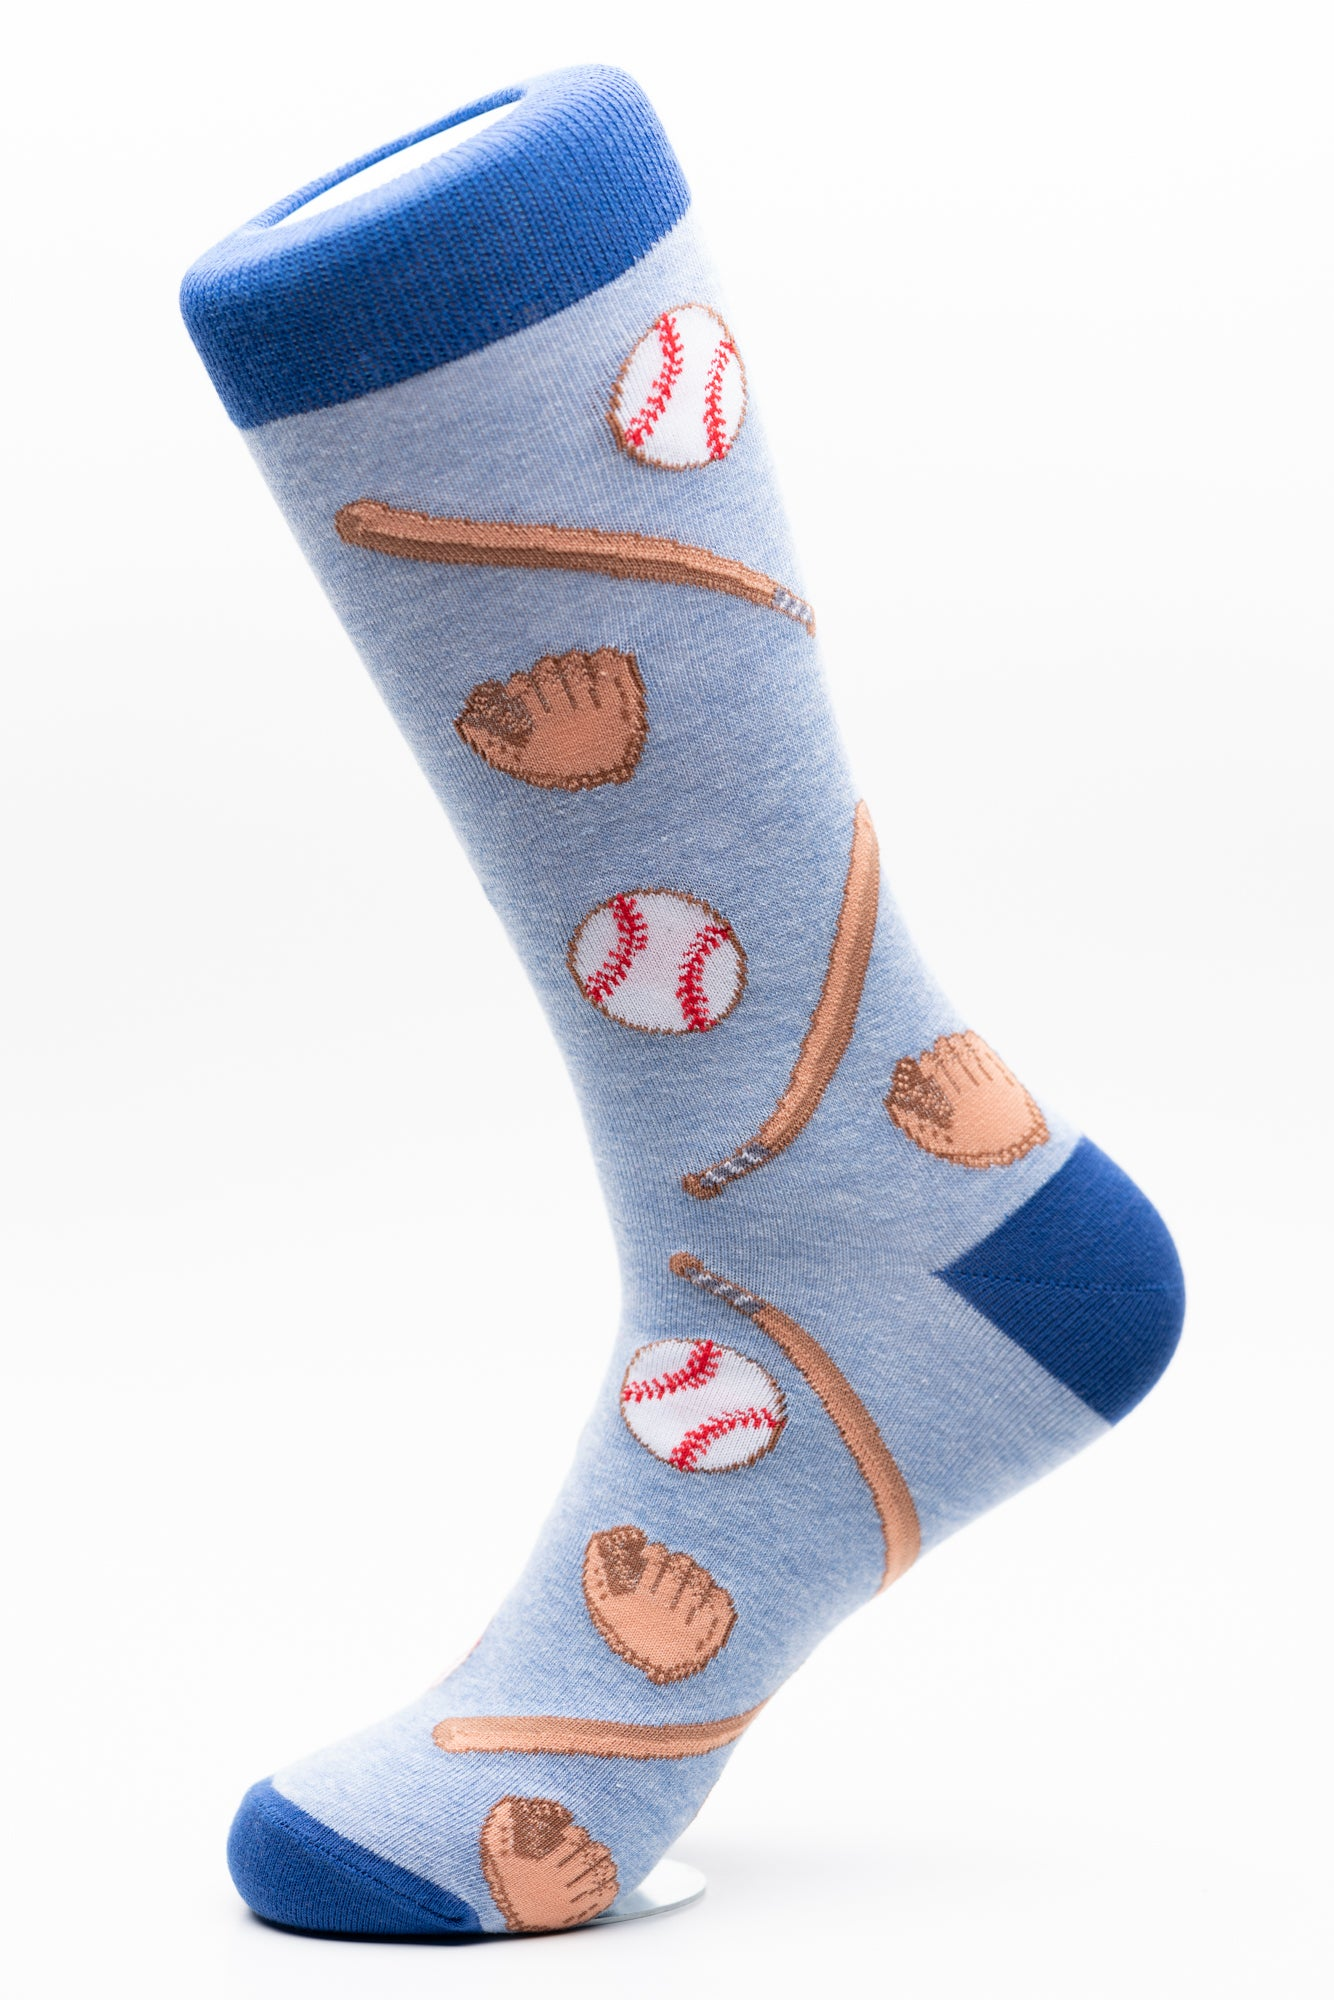 Baseball glove, bat and ball fun crew socks